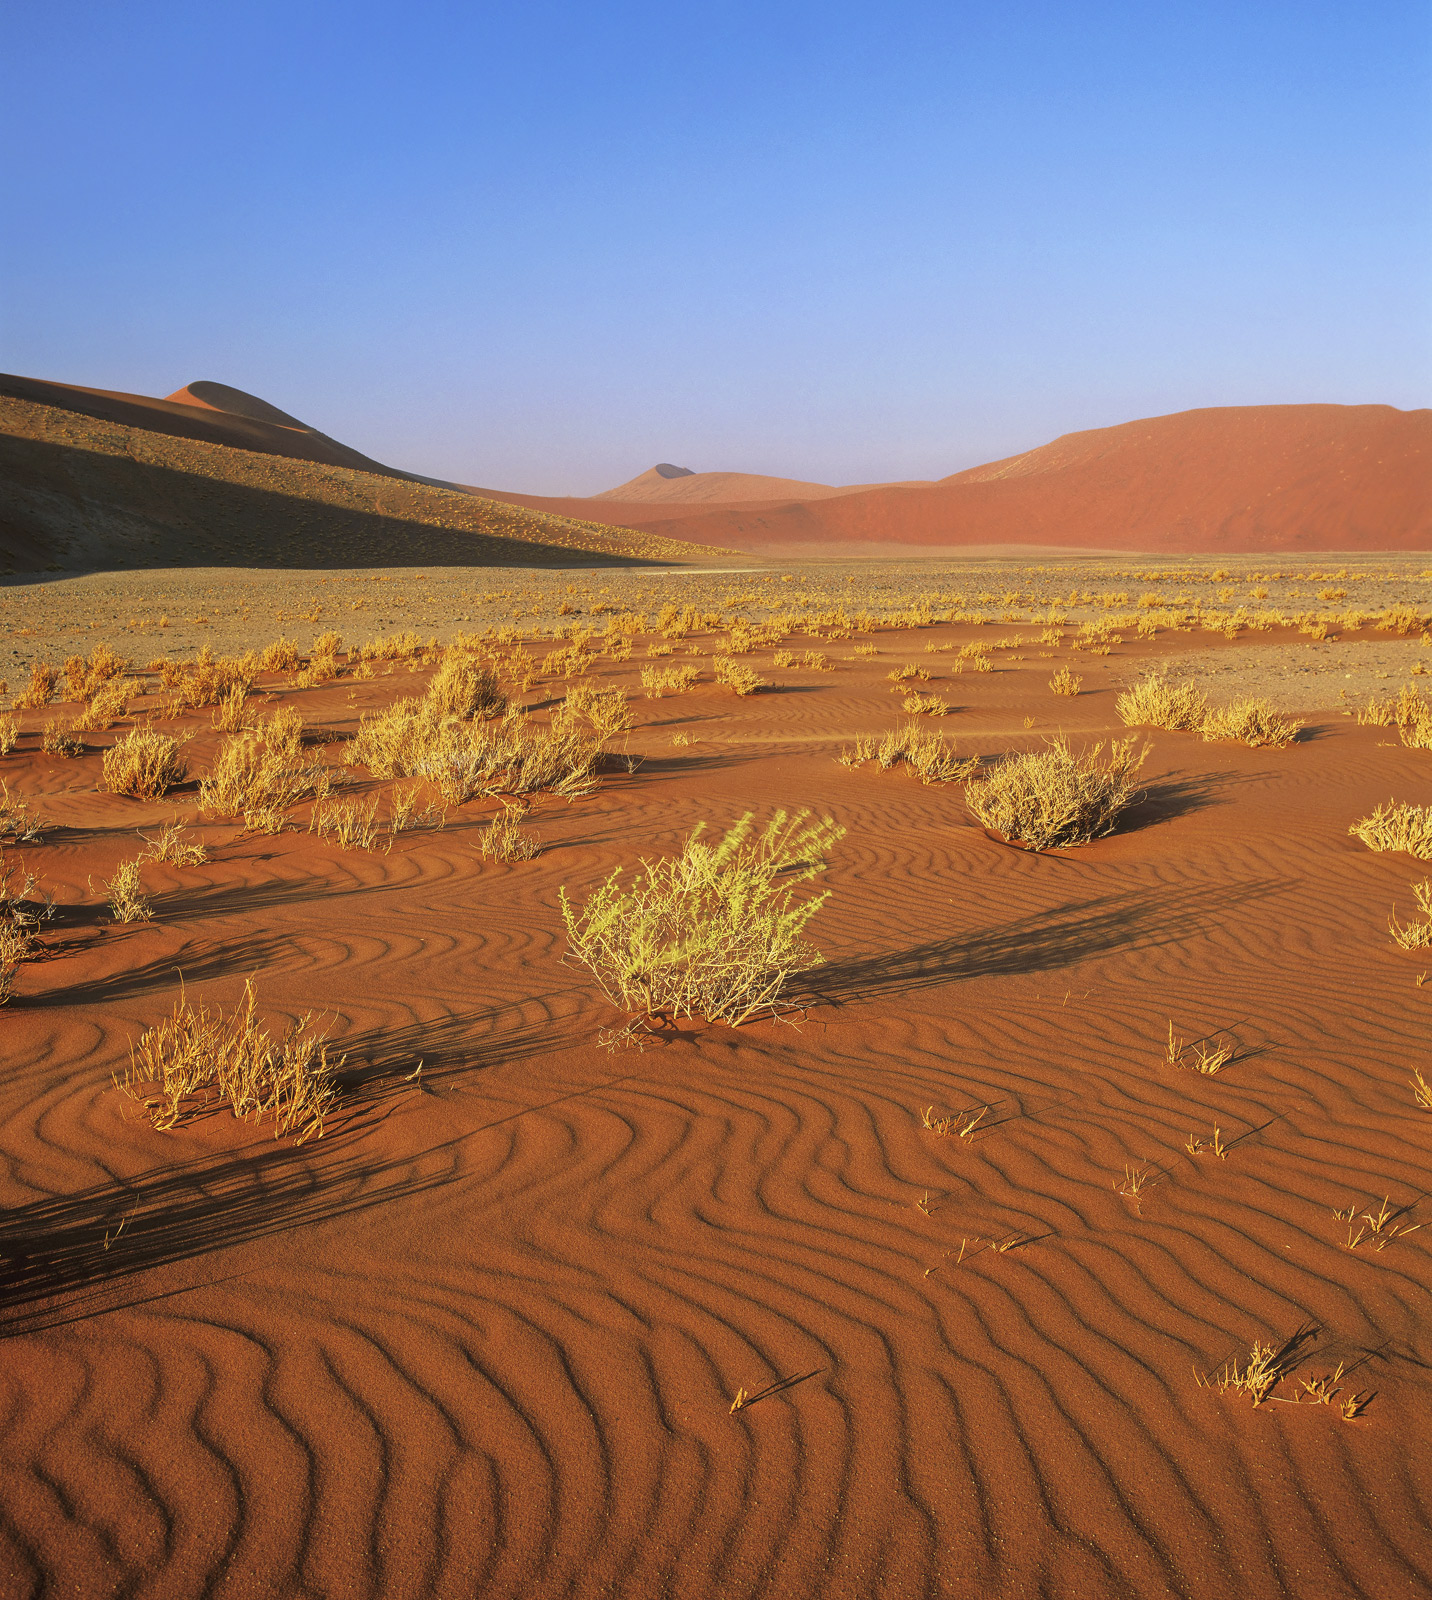 Shortly after sunrise is probably the best time to witness this surreal world of iron rich sand dunes and dessicated plants and...